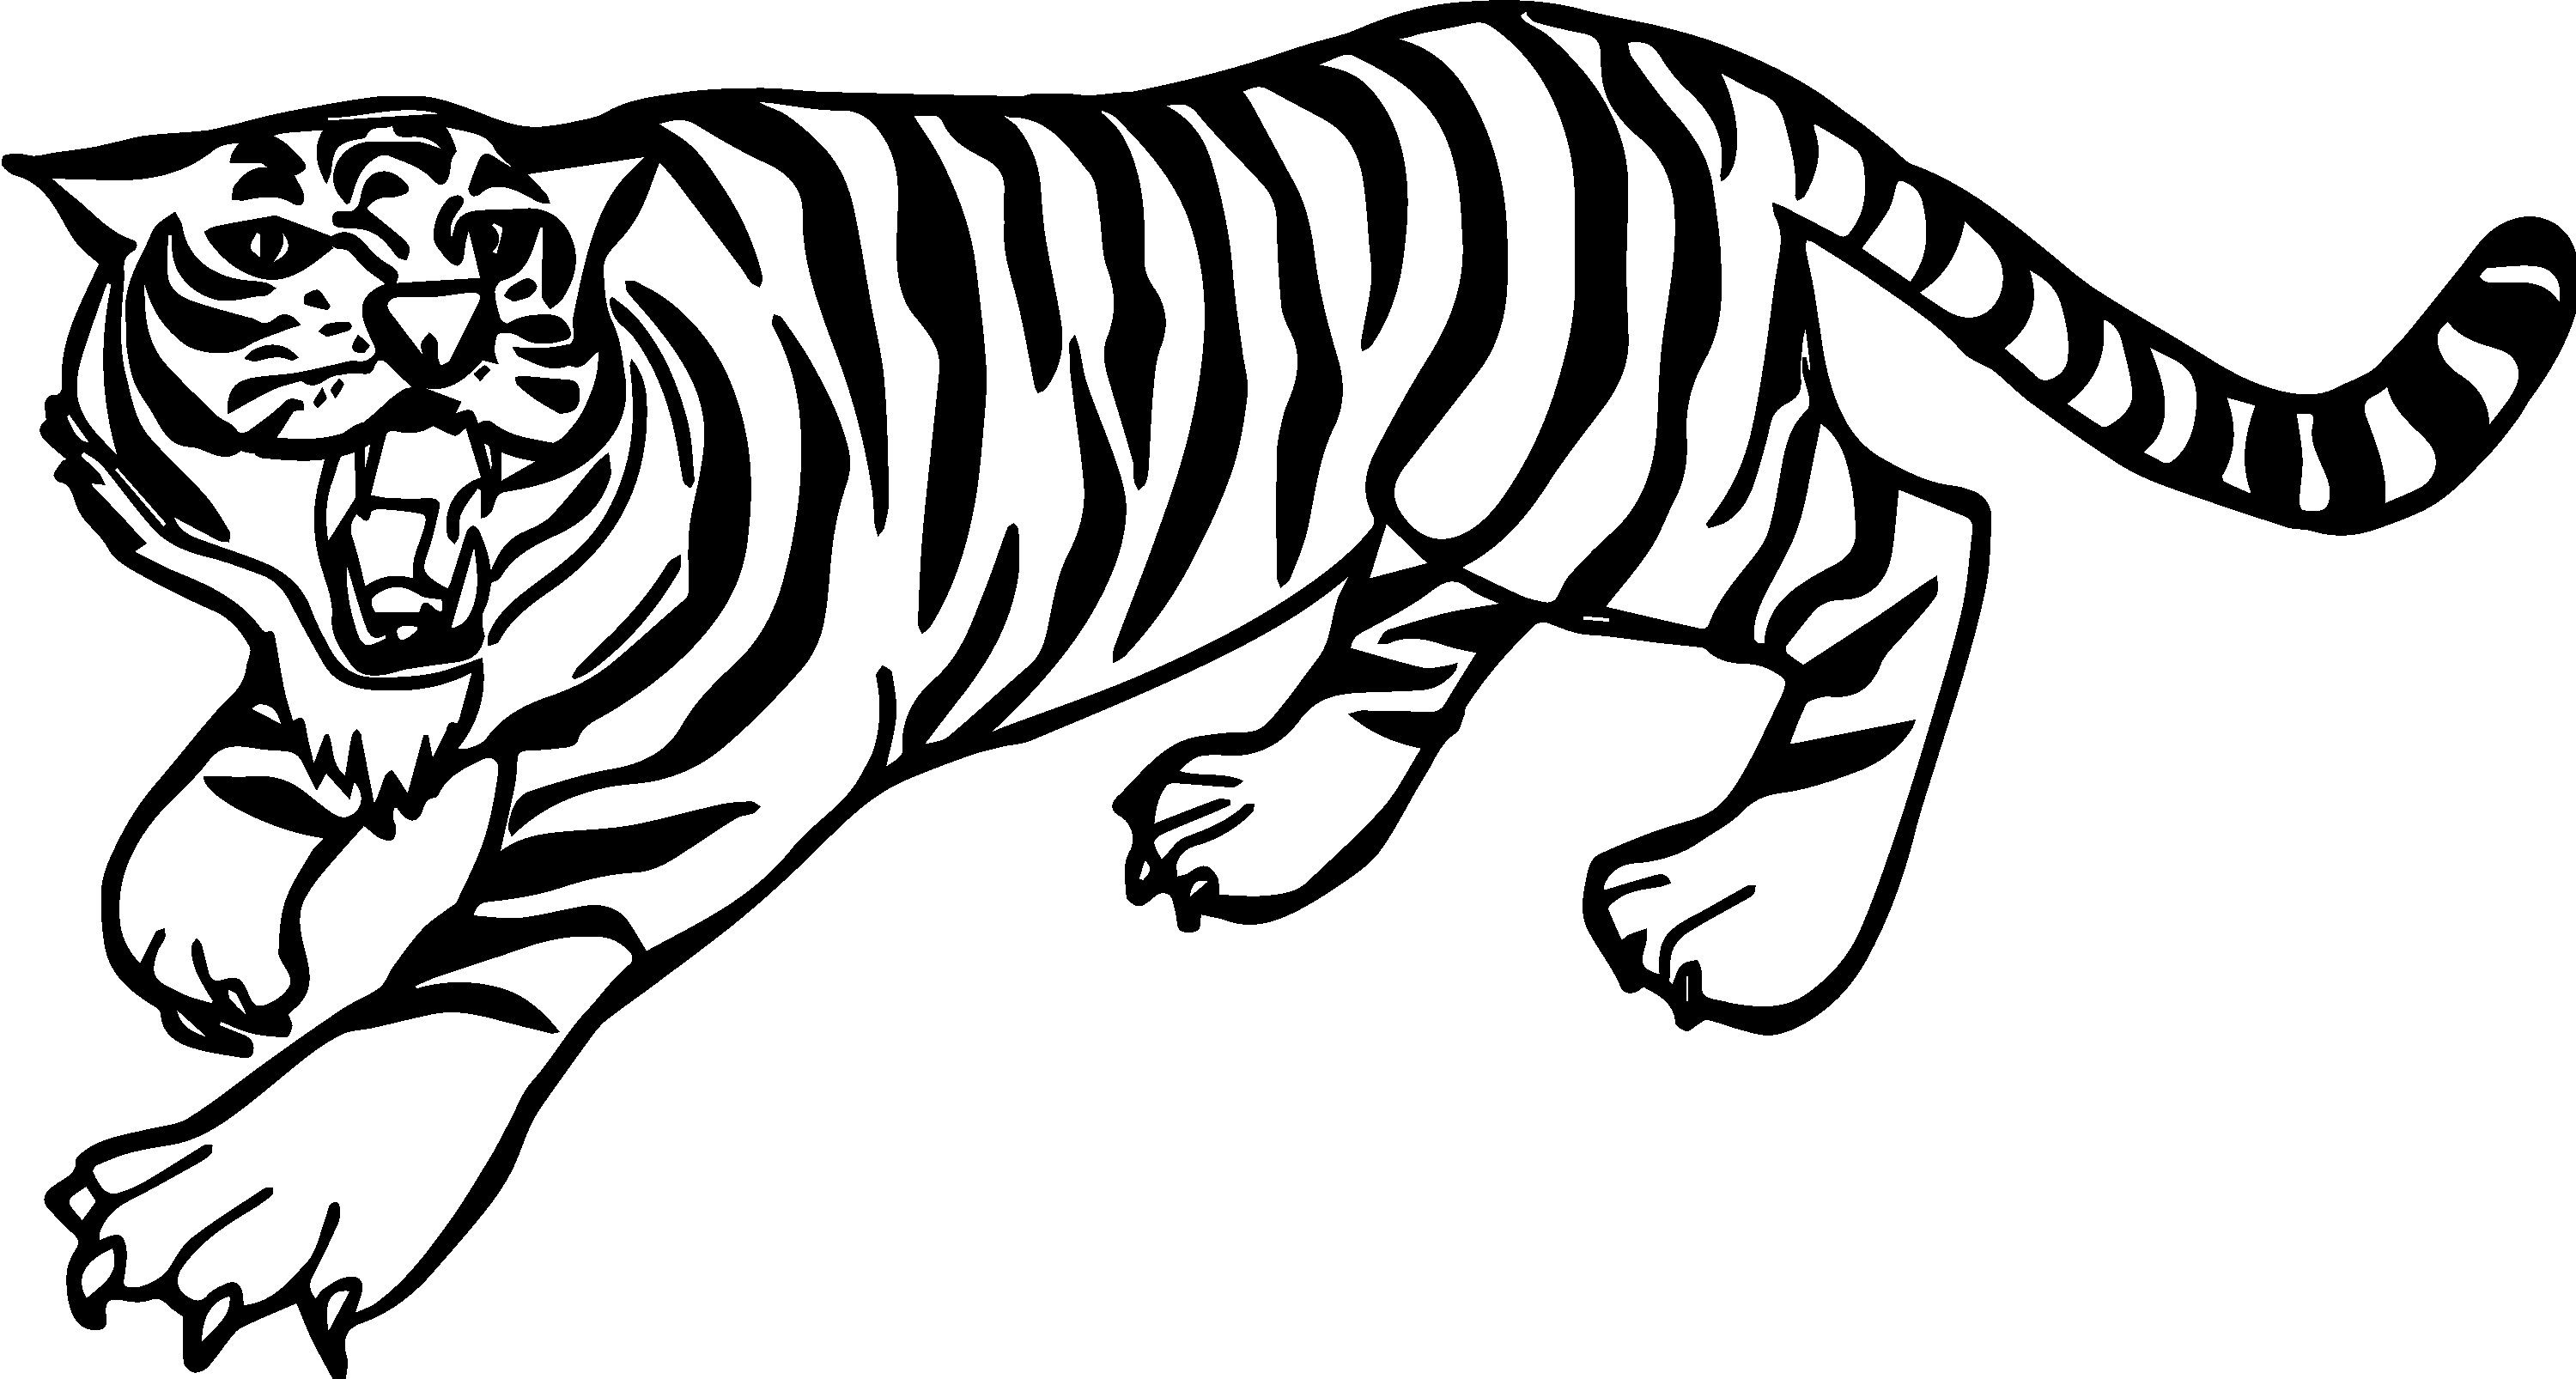 Tiger Coloring Pages Ideas With Awesome Pattern Free Coloring Sheets Animal Coloring Pages Mandala Coloring Pages Cartoon Coloring Pages